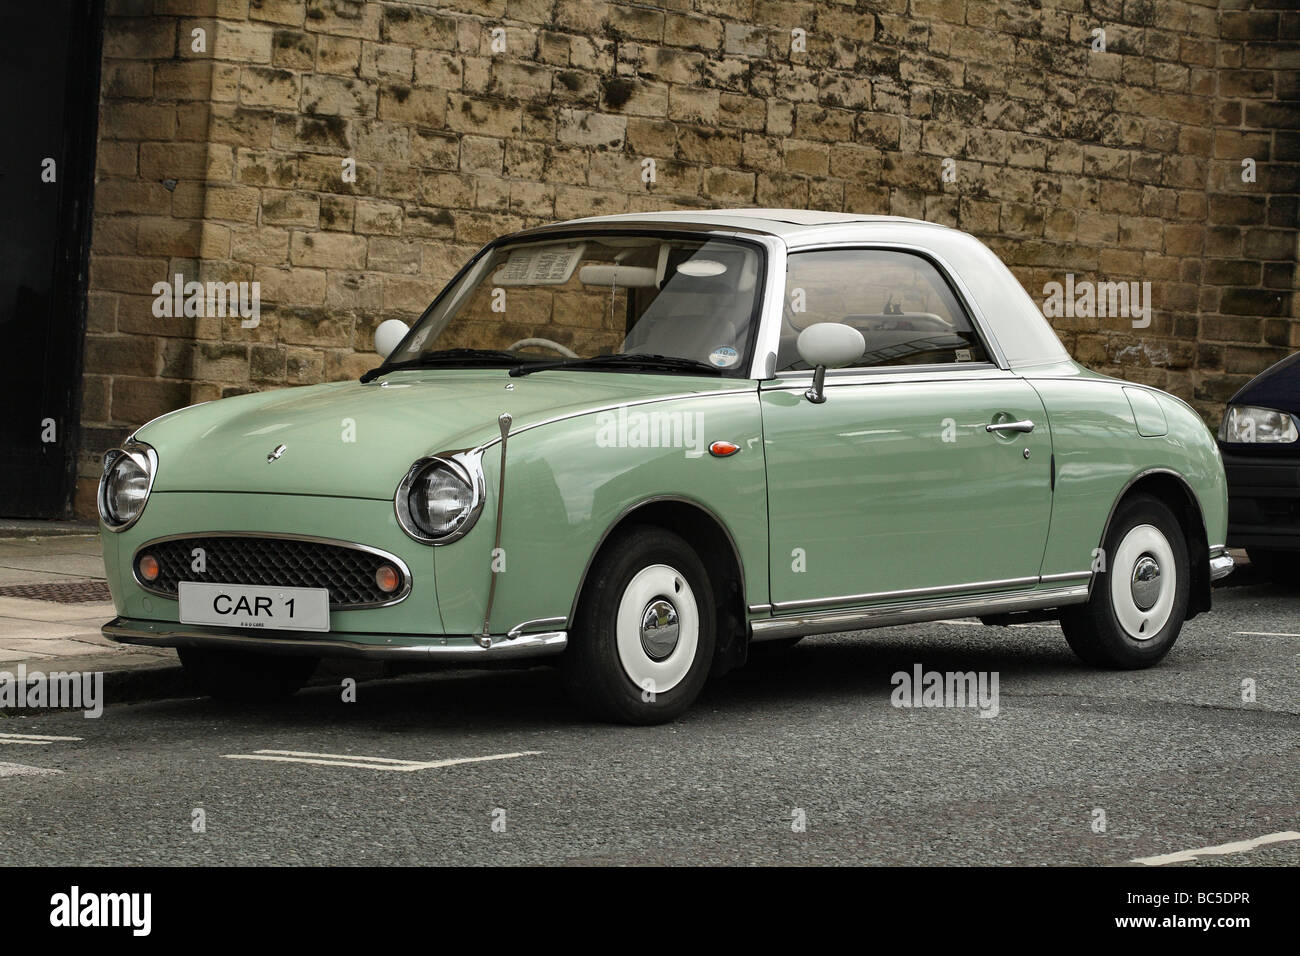 Nissan Figaro retro Style car limited edition automatics made in ...